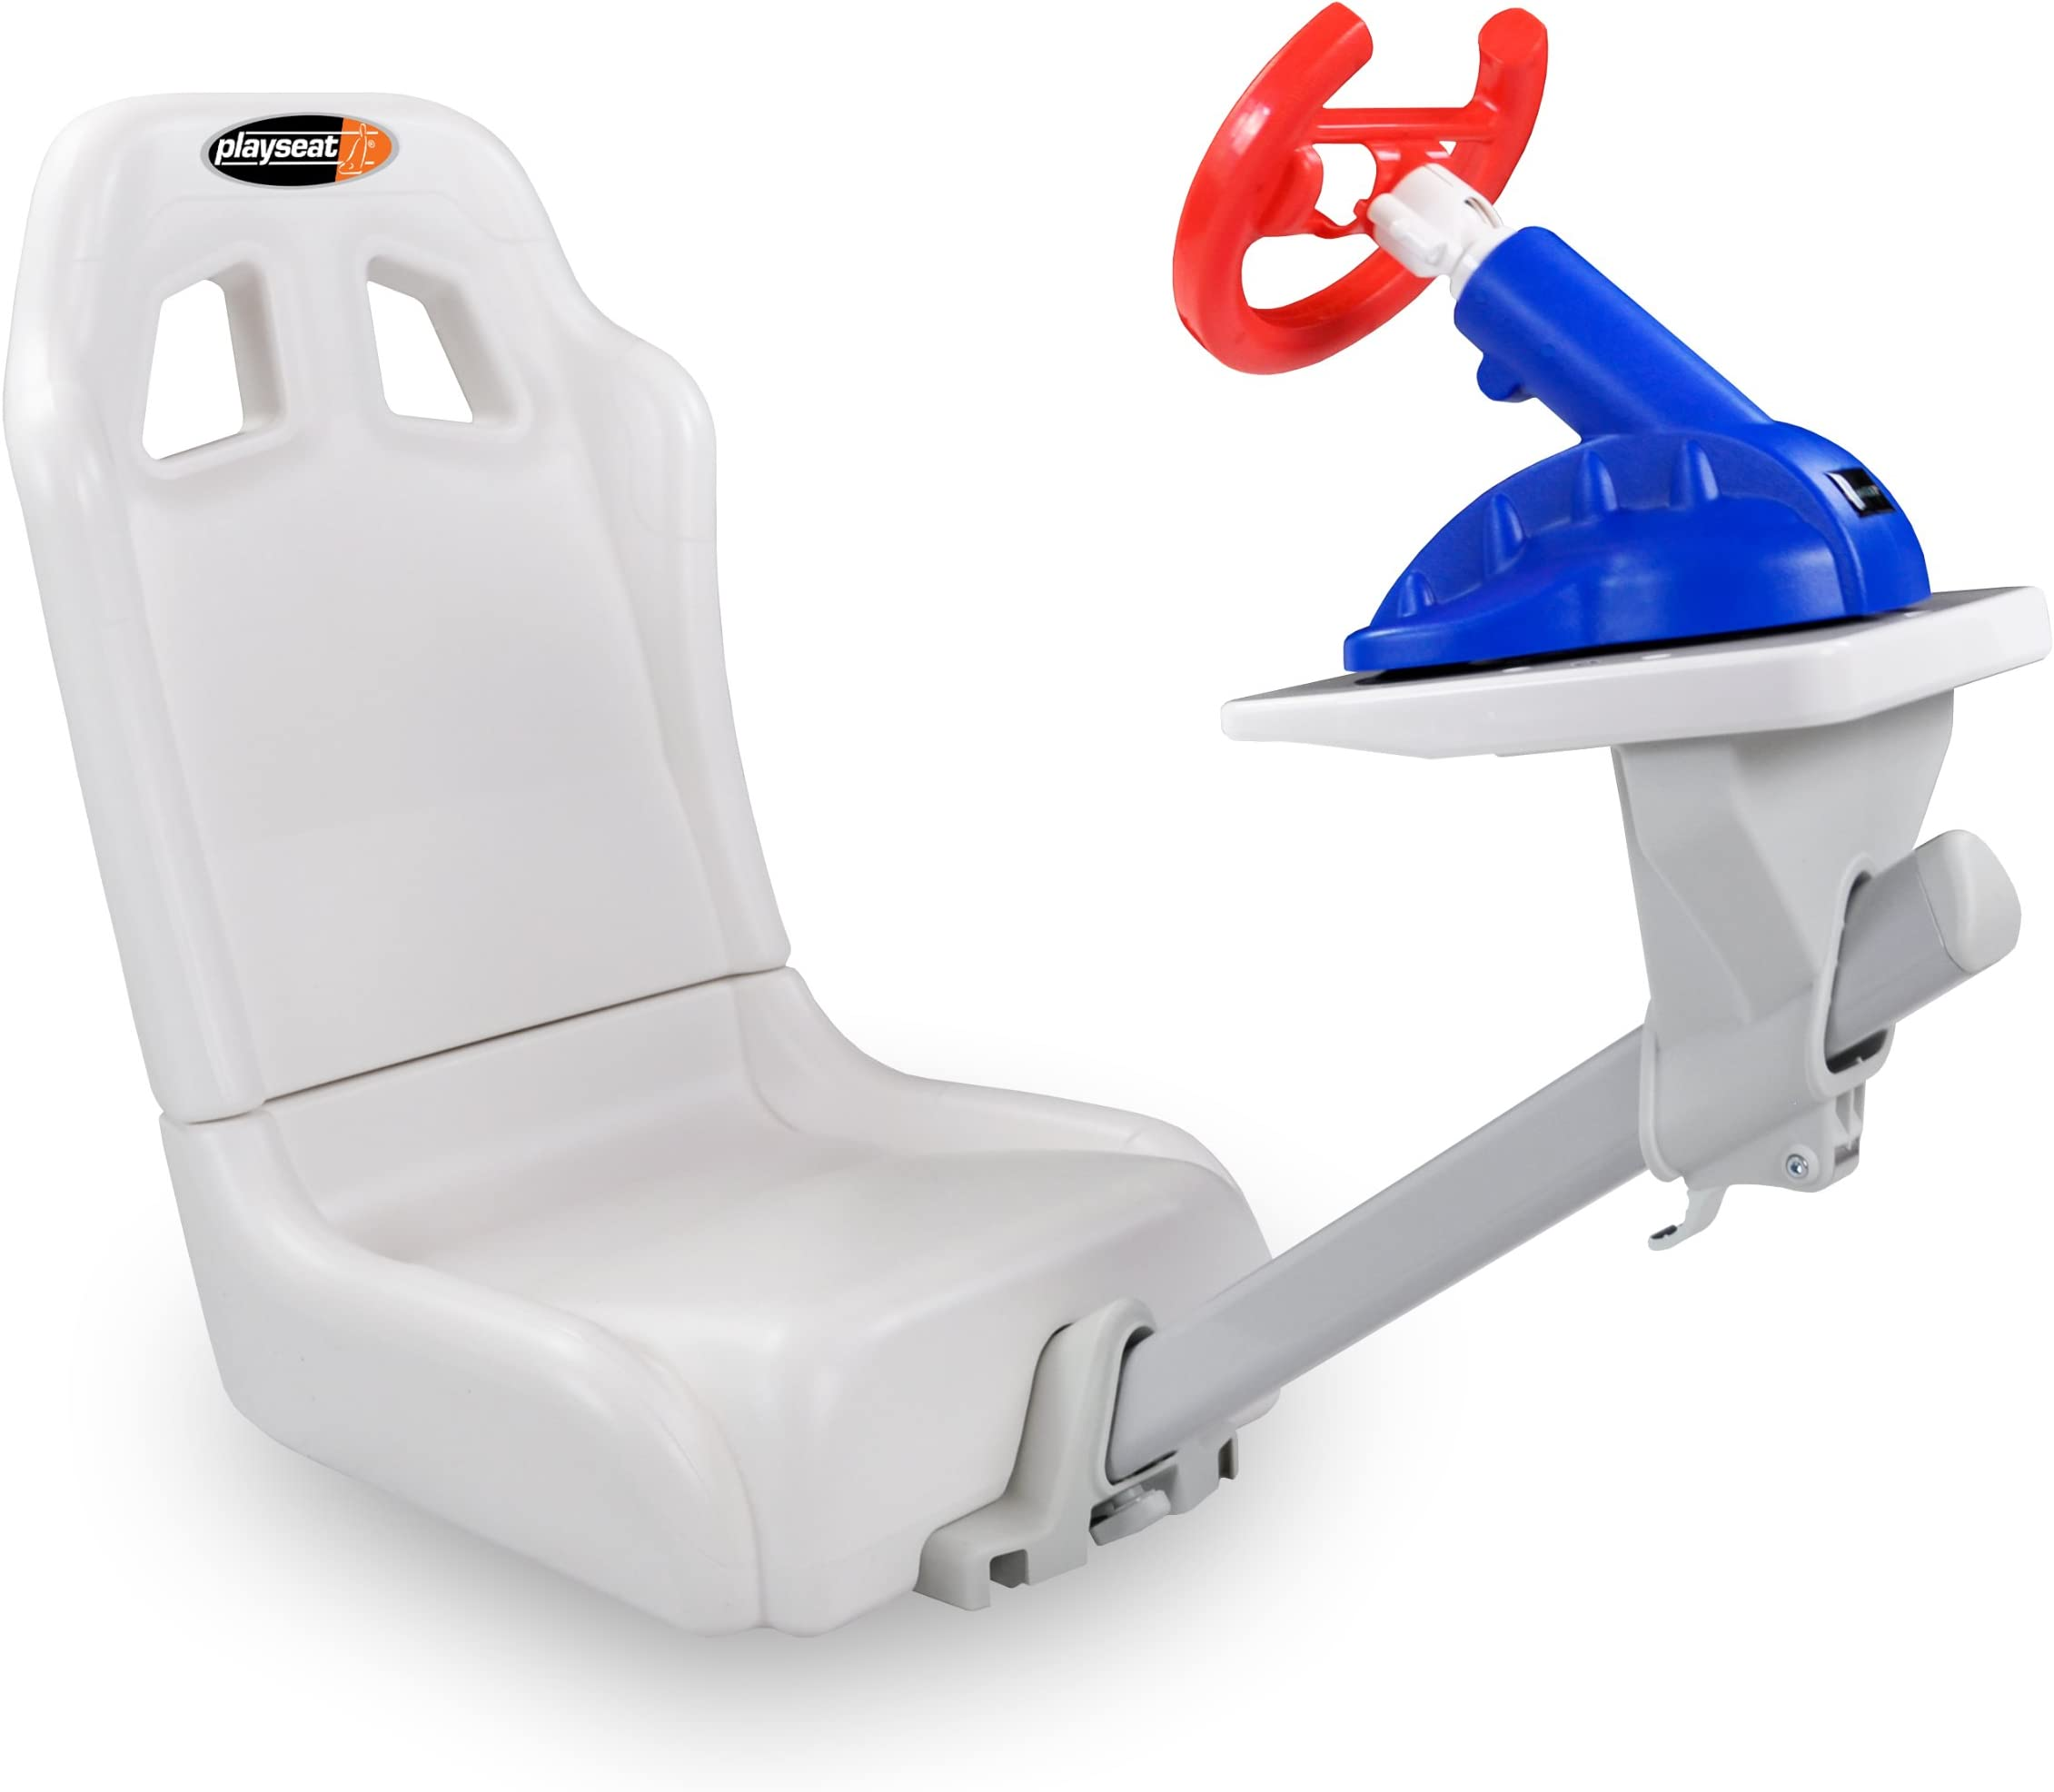 Amazon com: Playseat Rookie Gaming Seat for use with